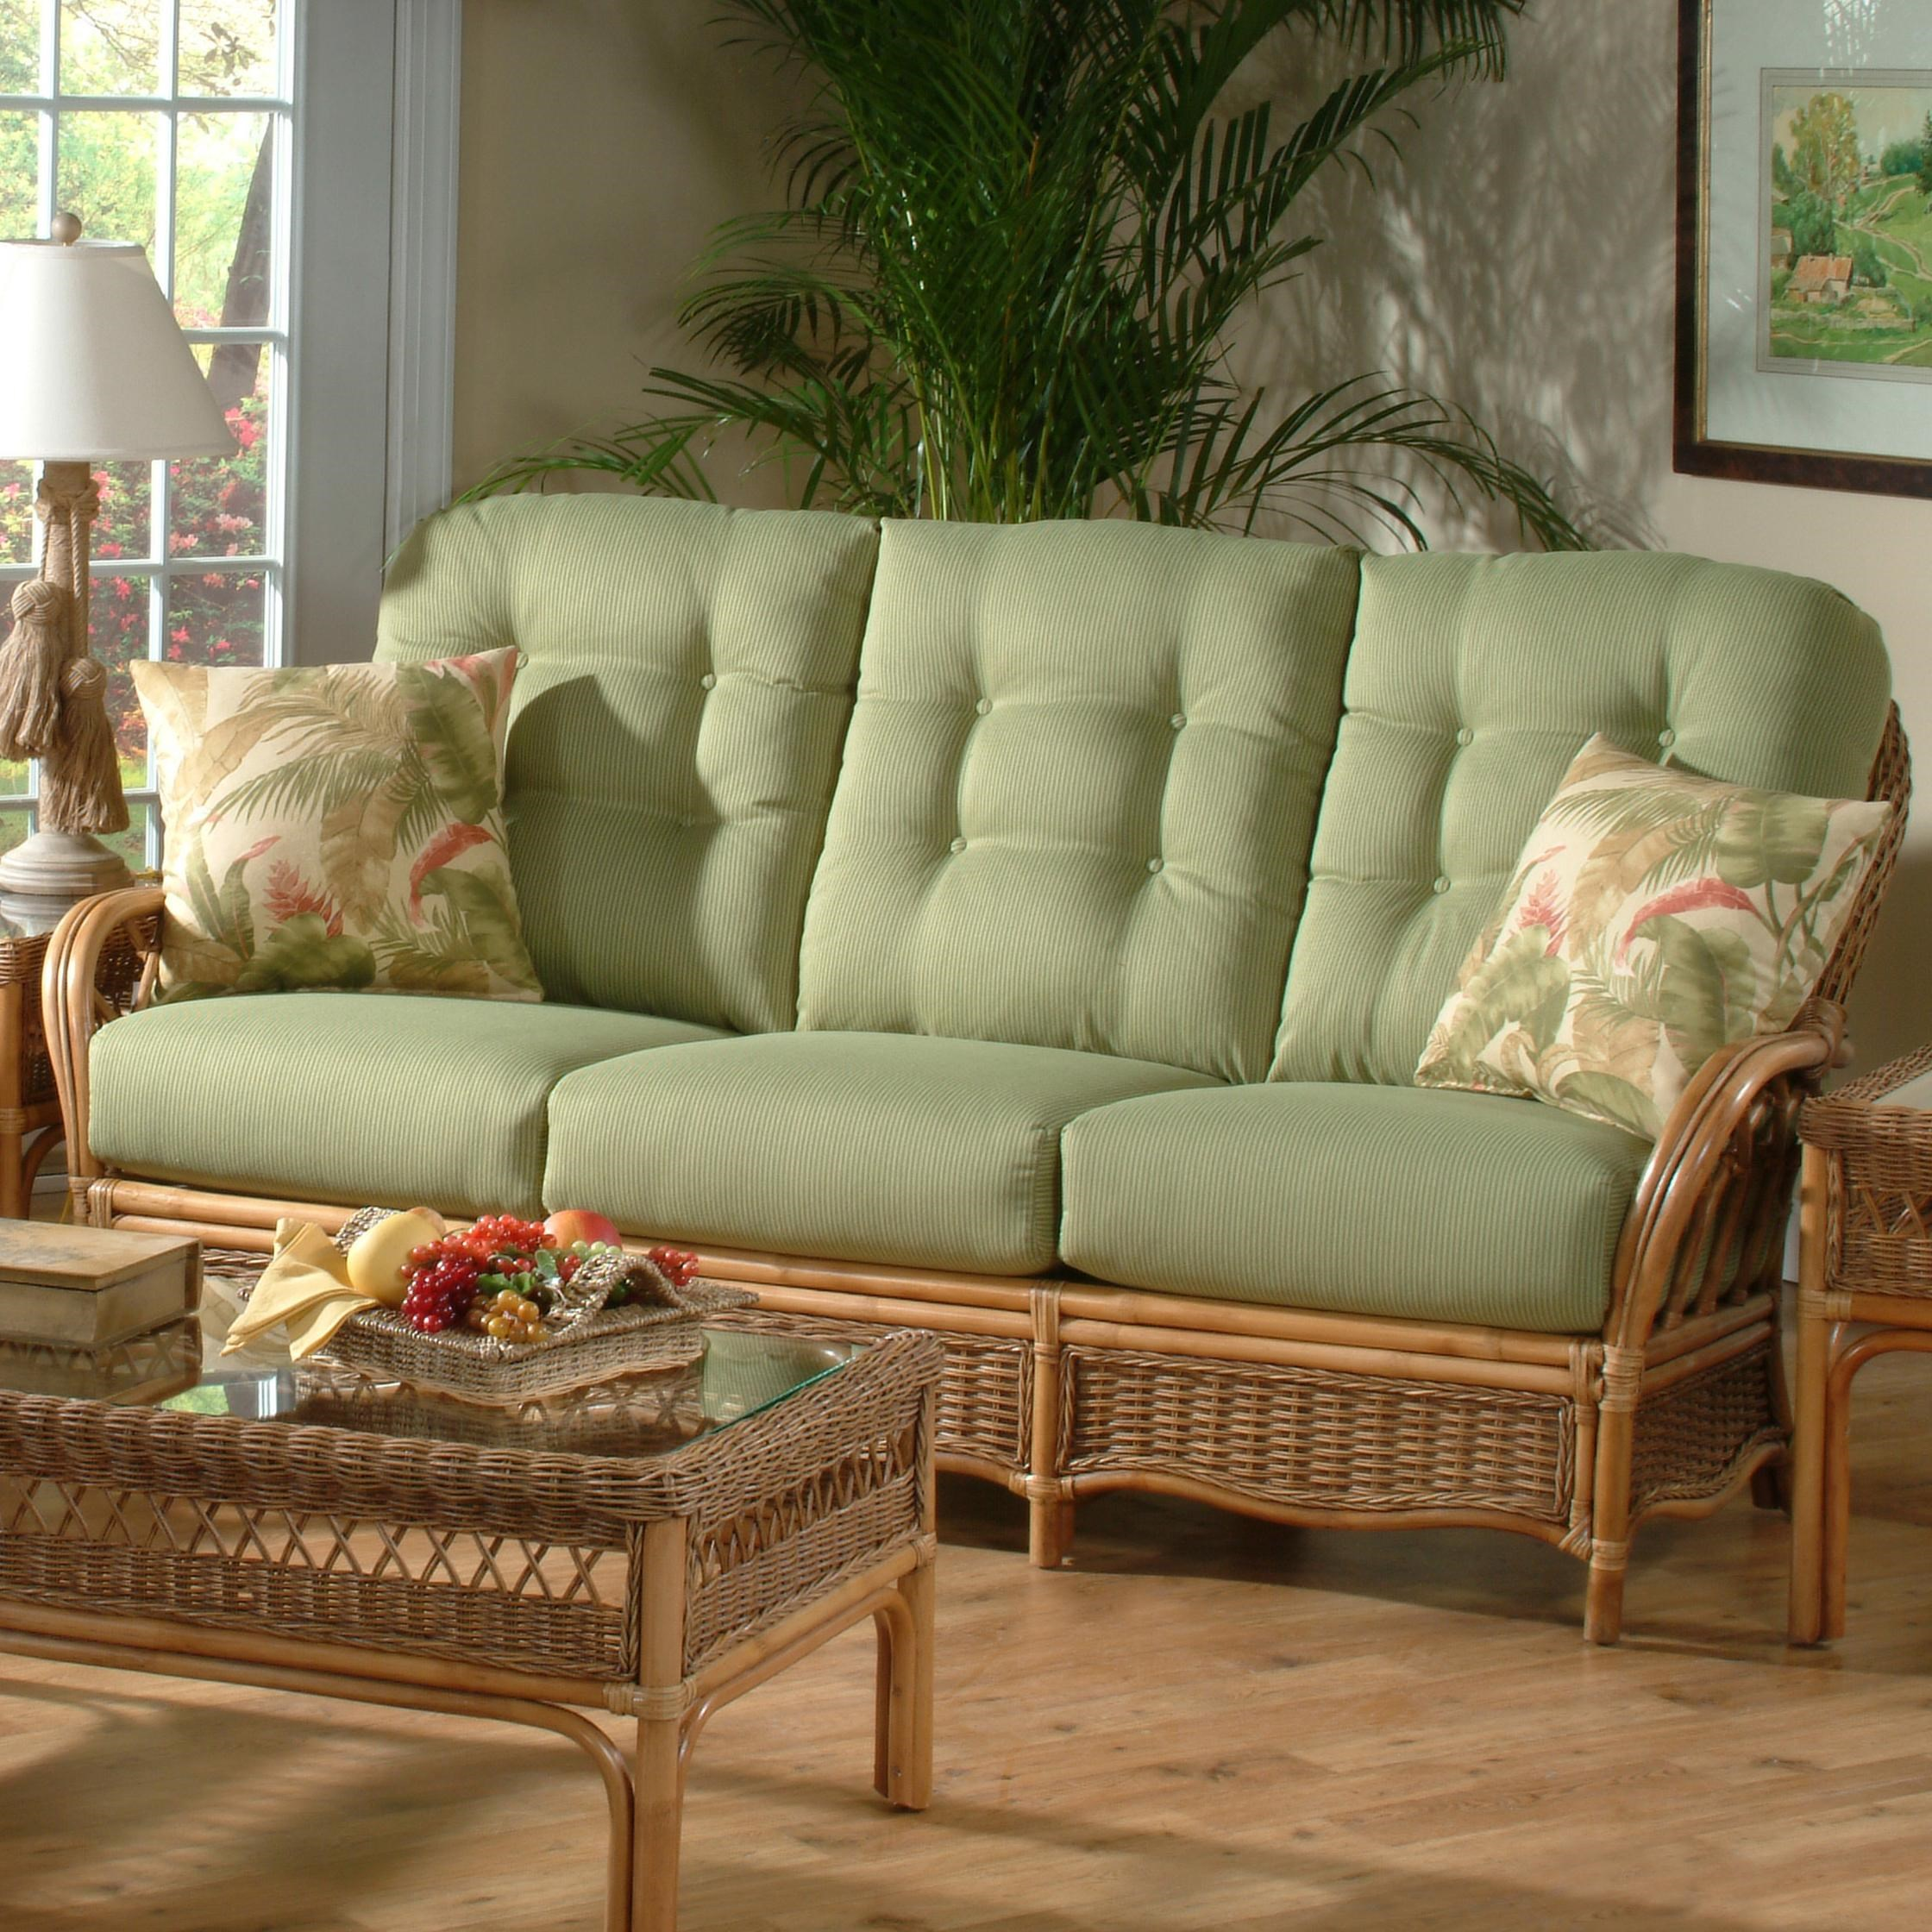 Sofa Rattan Vendor 10 Everglade 905 011 Tropical Rattan Sofa Becker